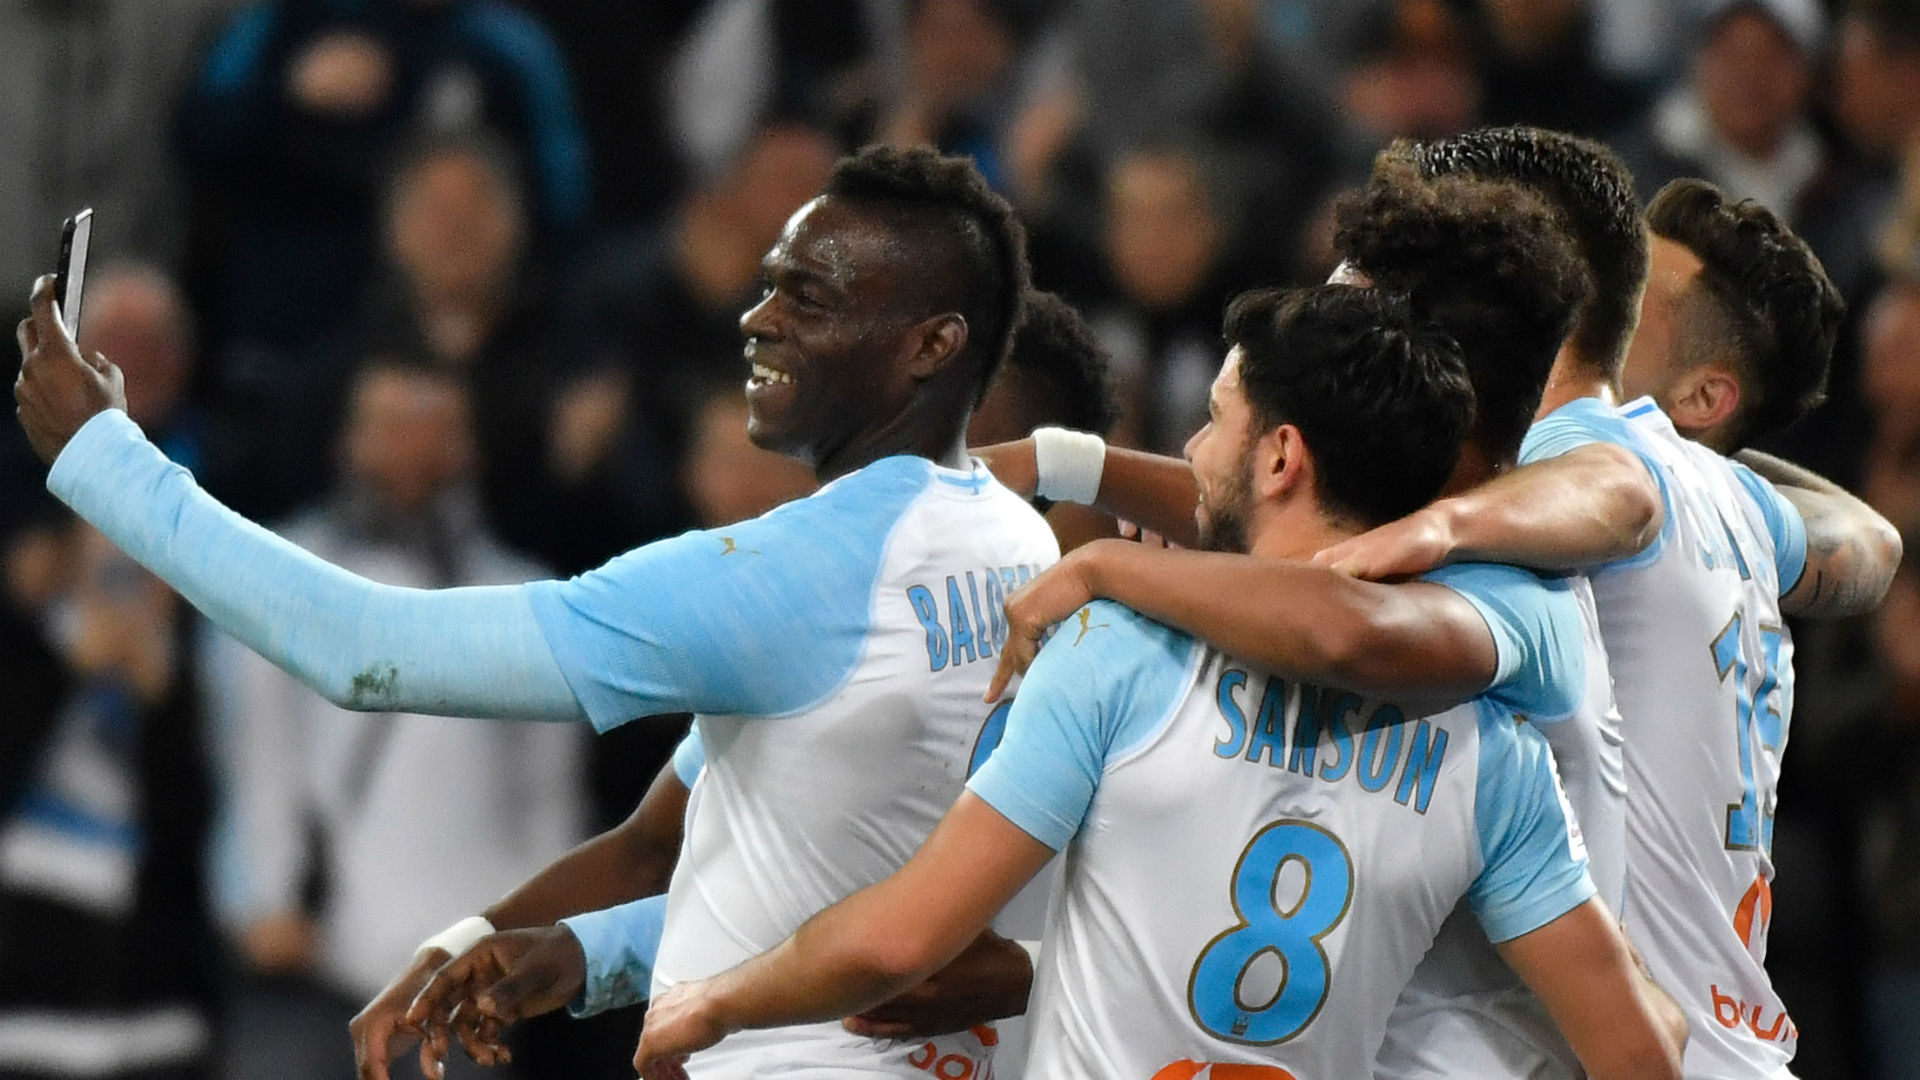 Mario Balotelli posted his goal celebration to Instagram right as it happened